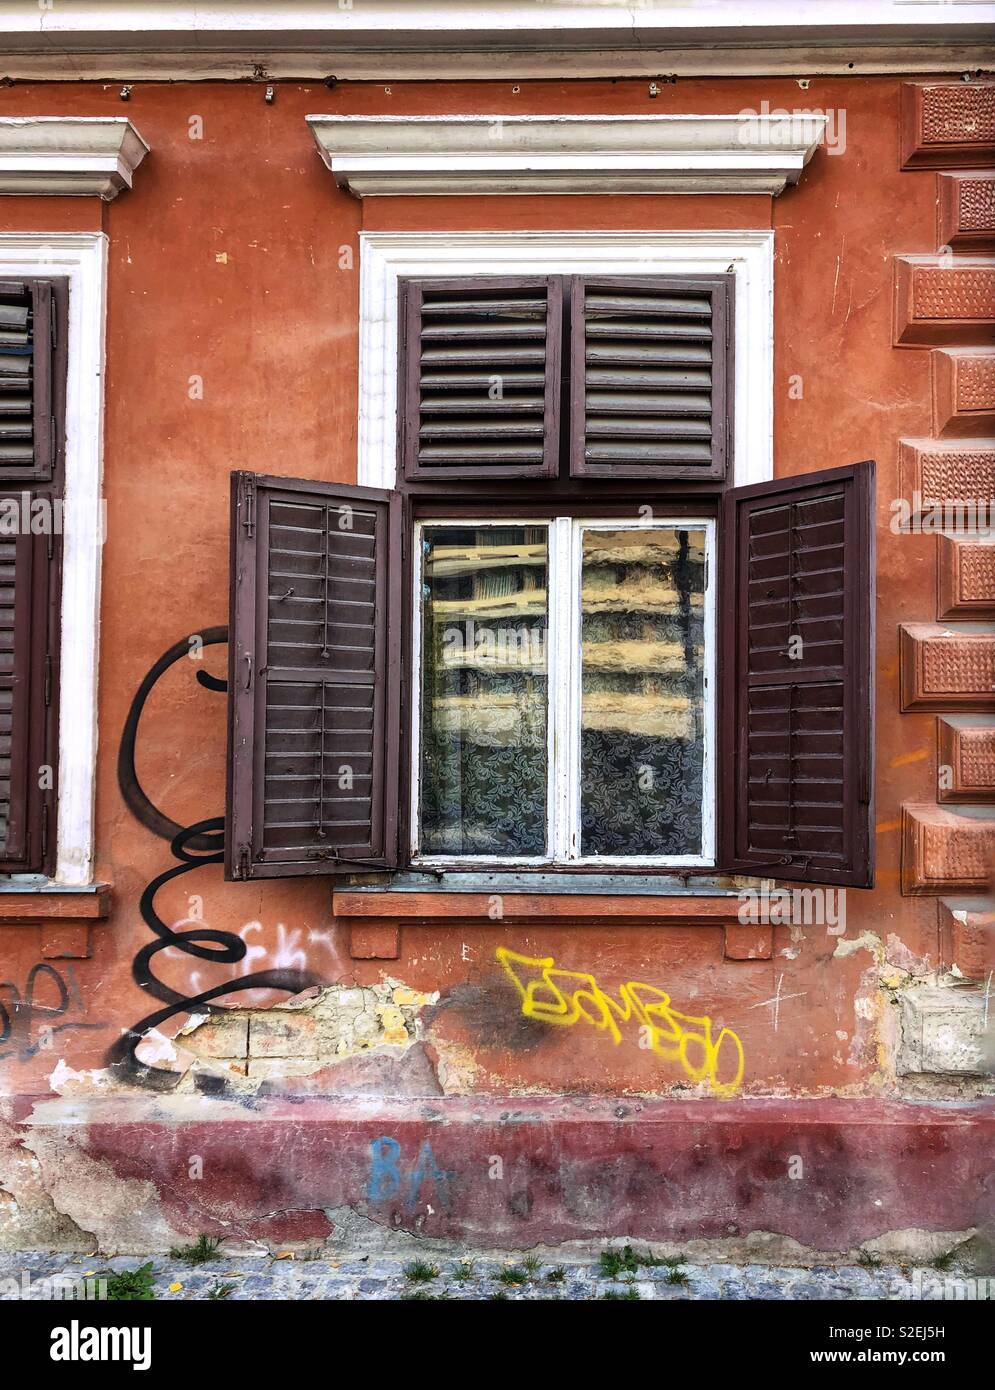 Open brown shutters, window reflection and graffiti on a painted wall. Stock Photo